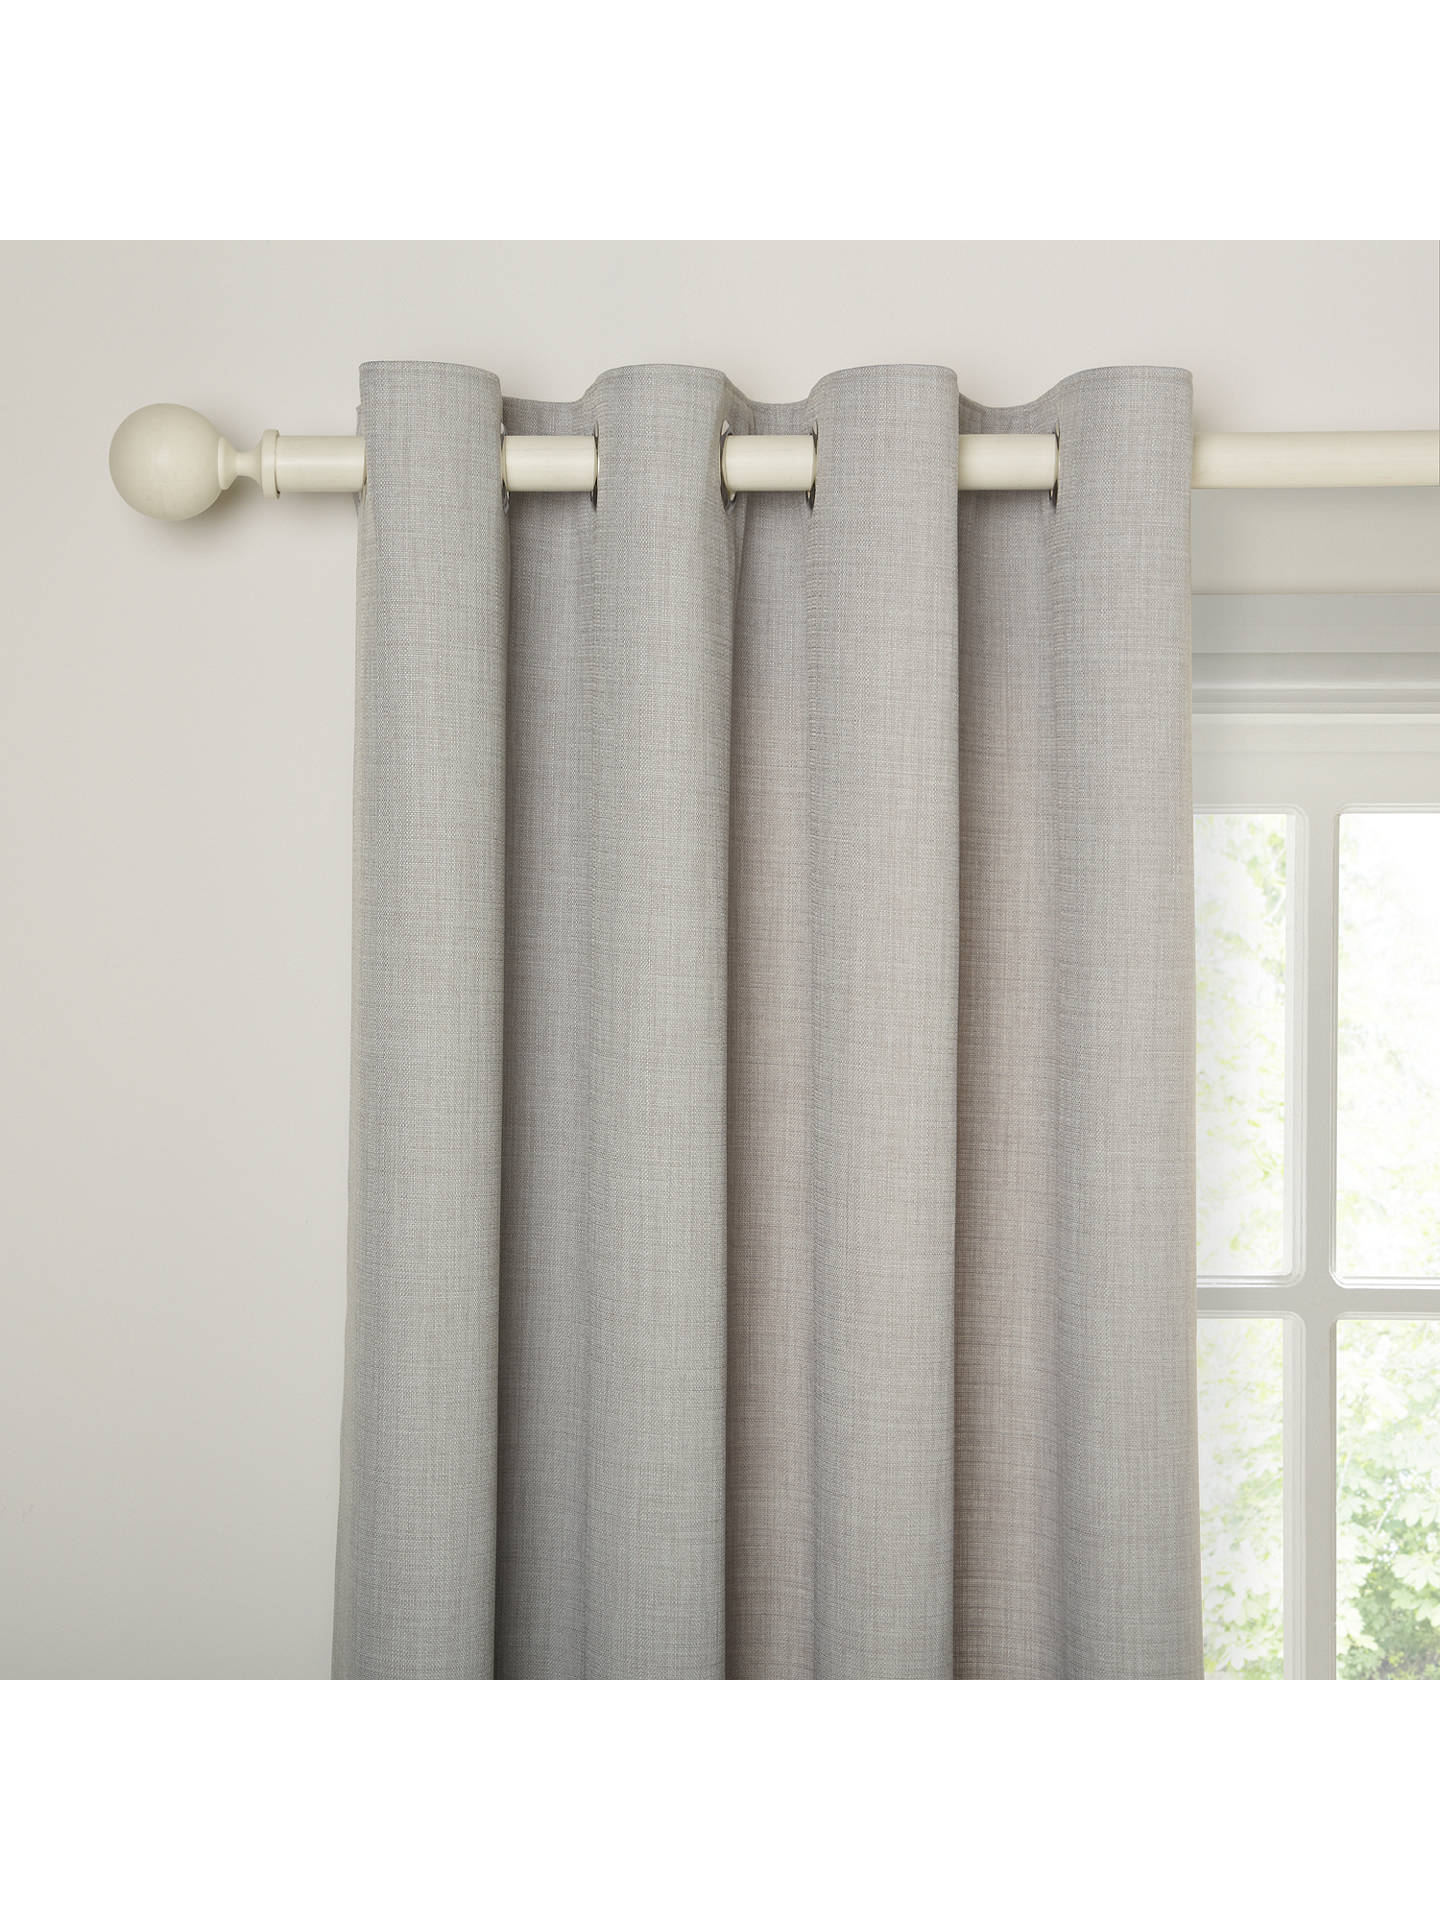 Buy John Lewis & Partners Barathea Pair Lined Eyelet Curtains, Blue Grey, W228 x Drop 182cm Online at johnlewis.com